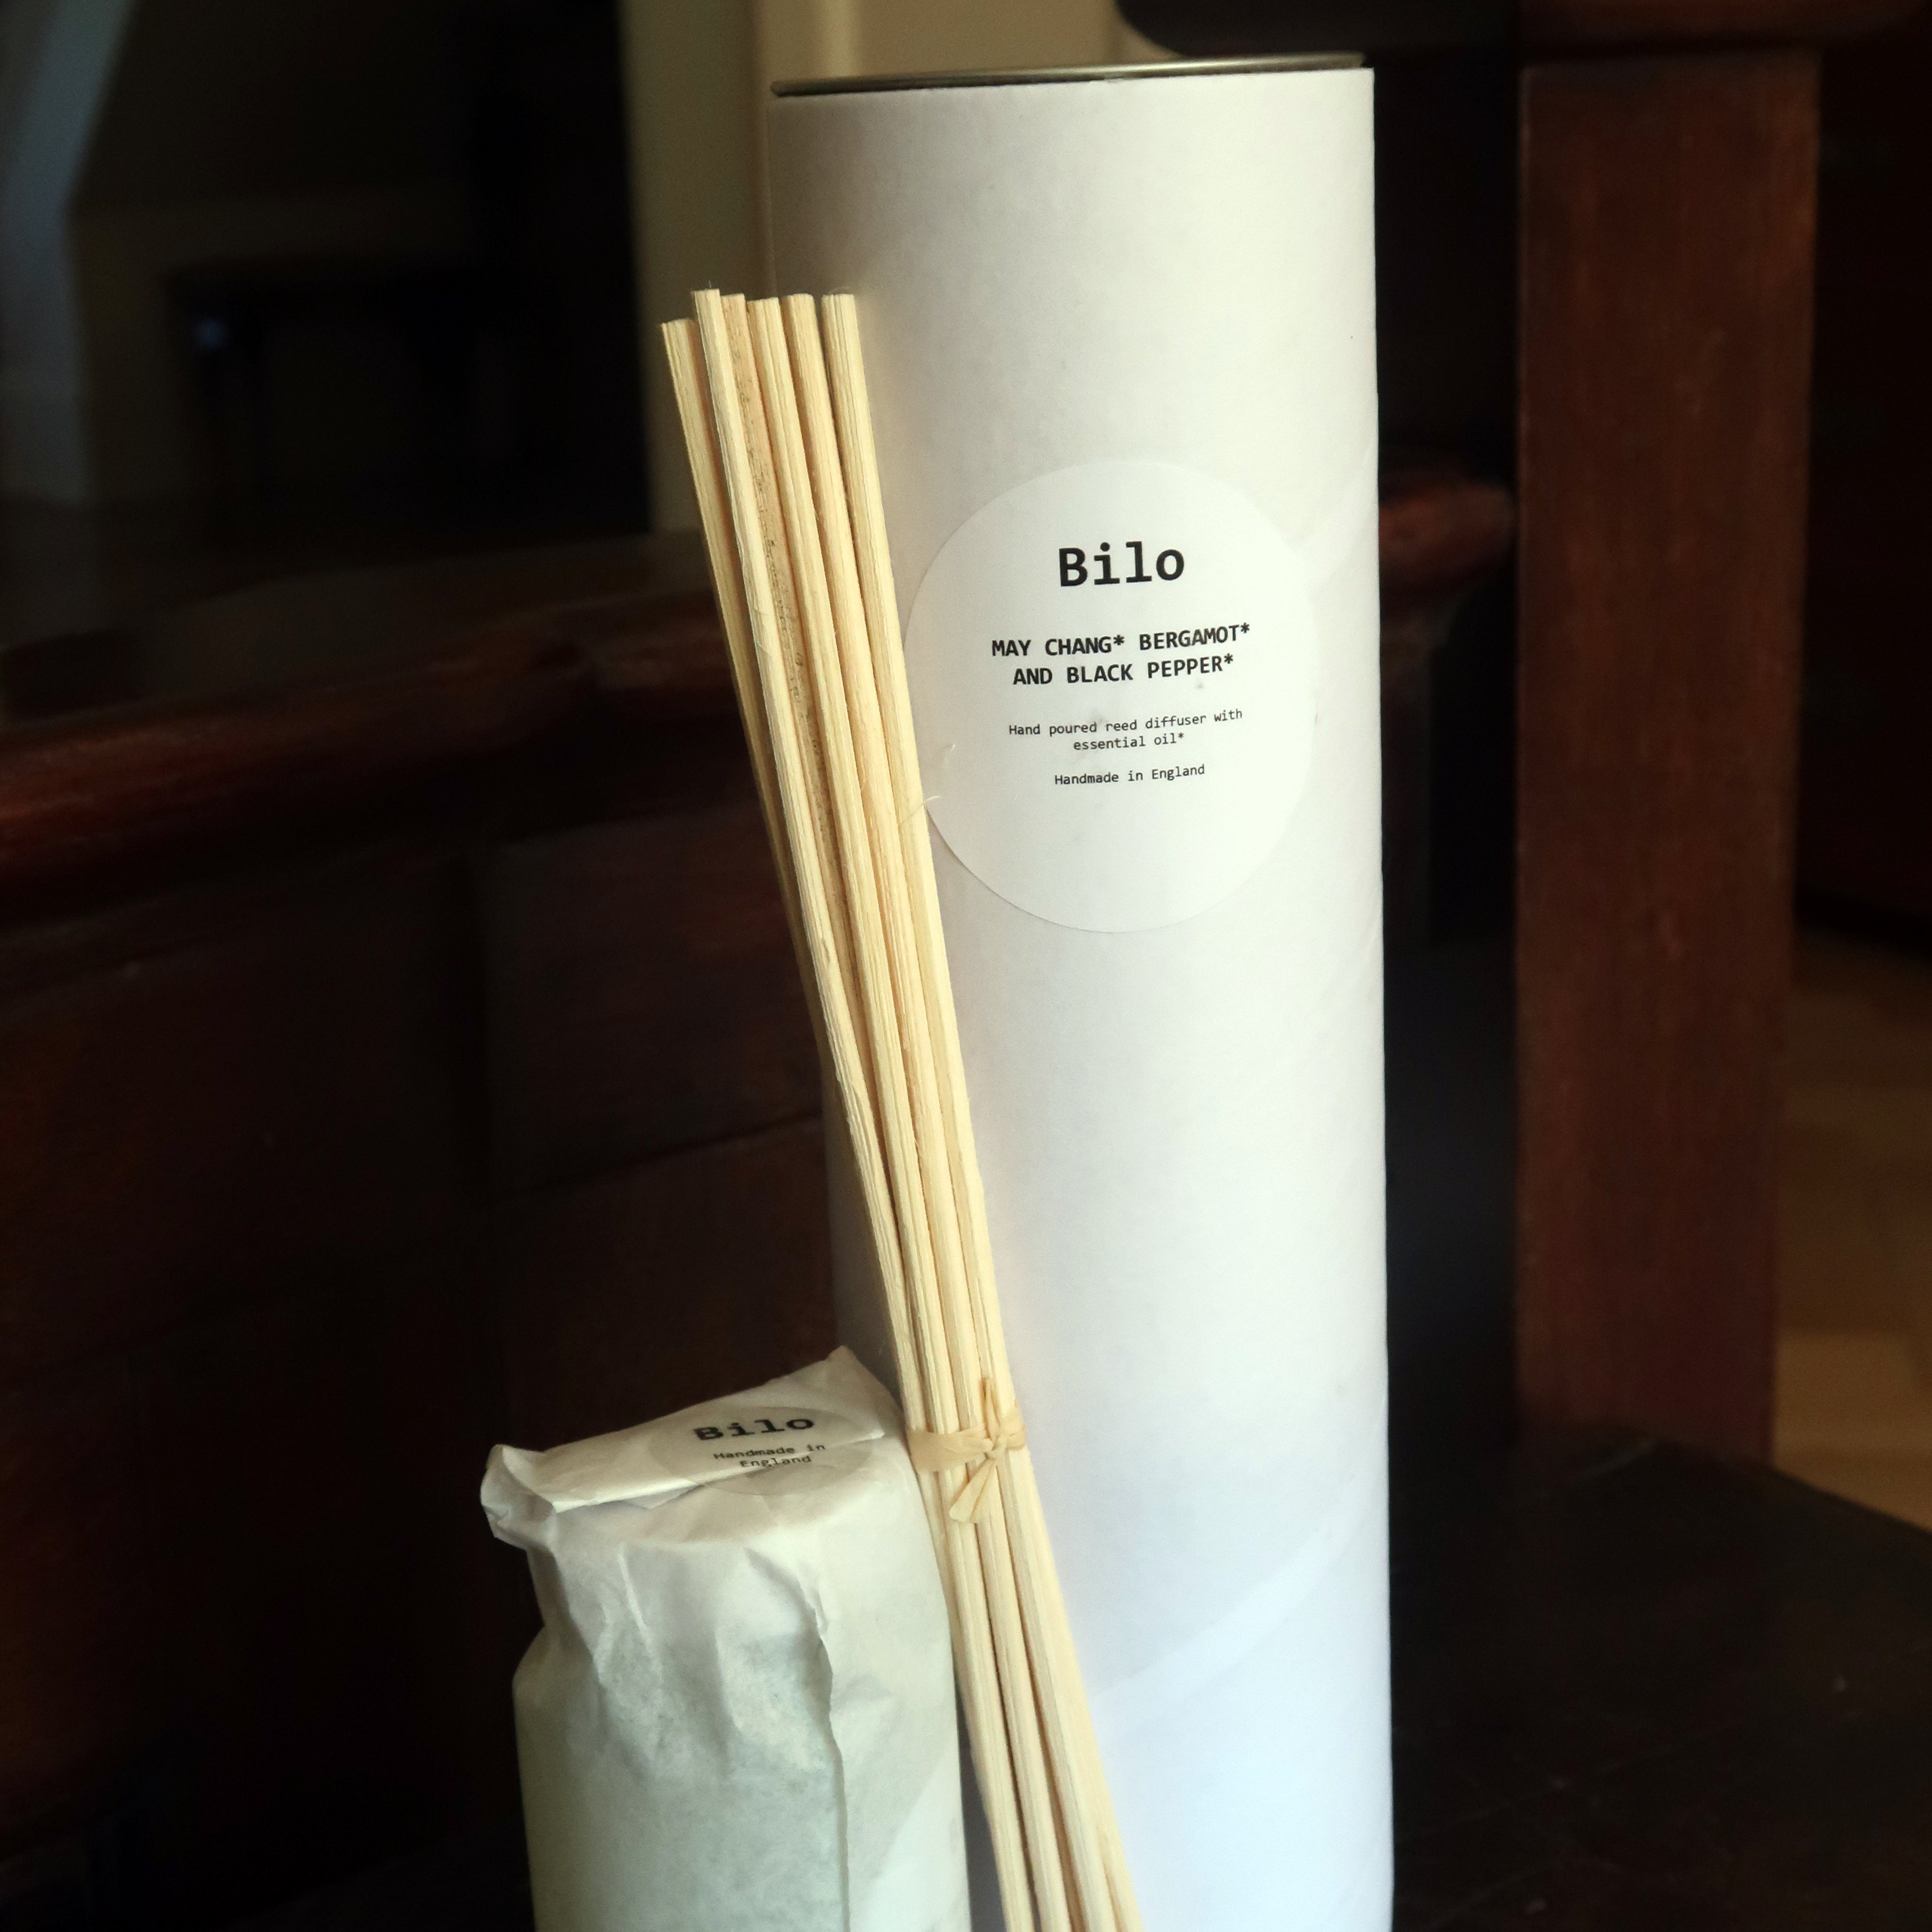 Bilo Reed Diffuser- May Chang, Bergamot and Black Pepper